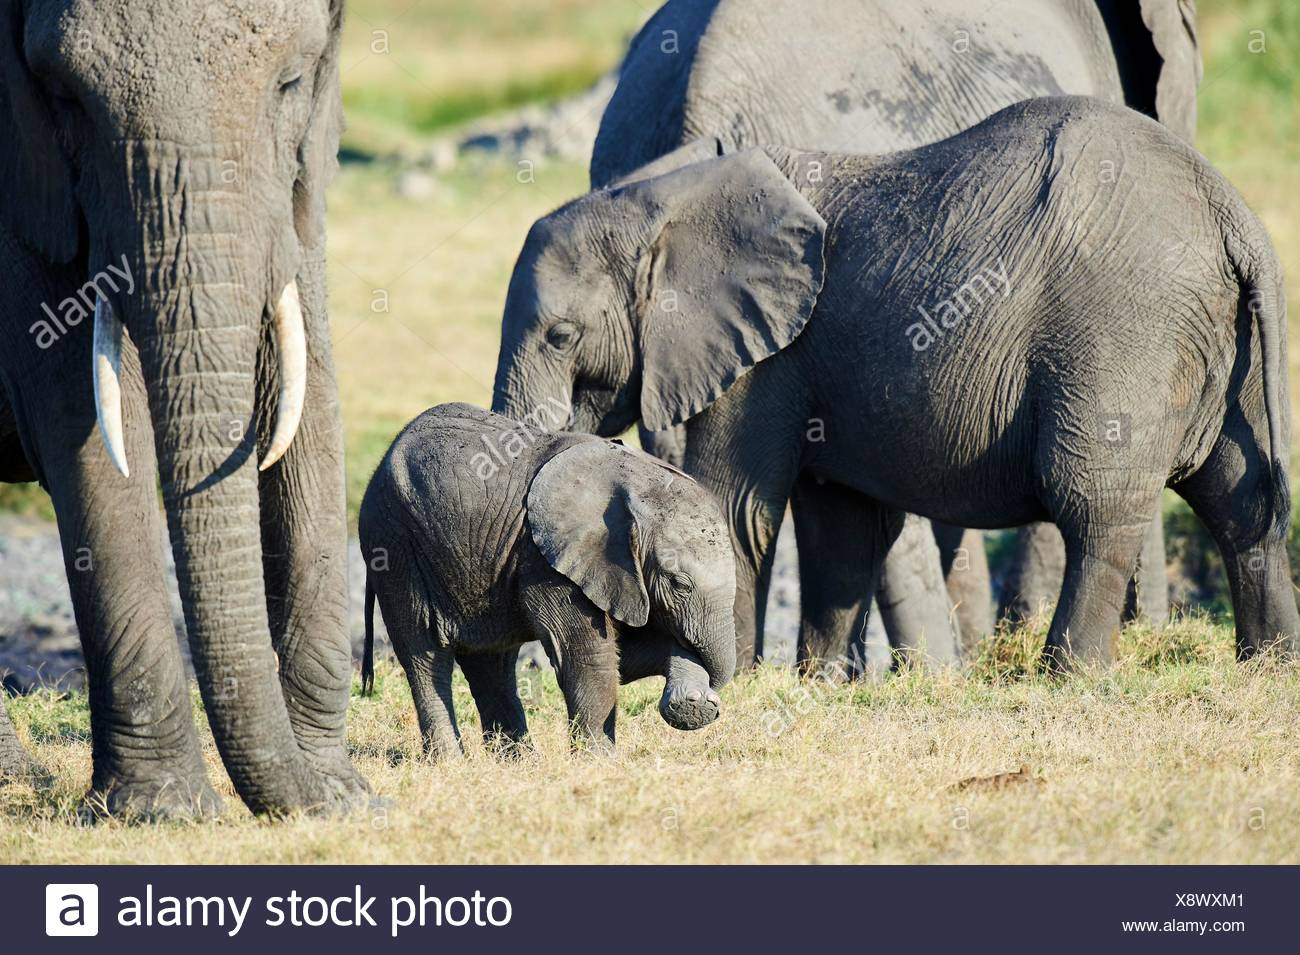 African elephant family with mother and young calf (Loxodonta africana), Duba Plains, Okavango Delta, Botswana, Southern Africa. - Stock Image